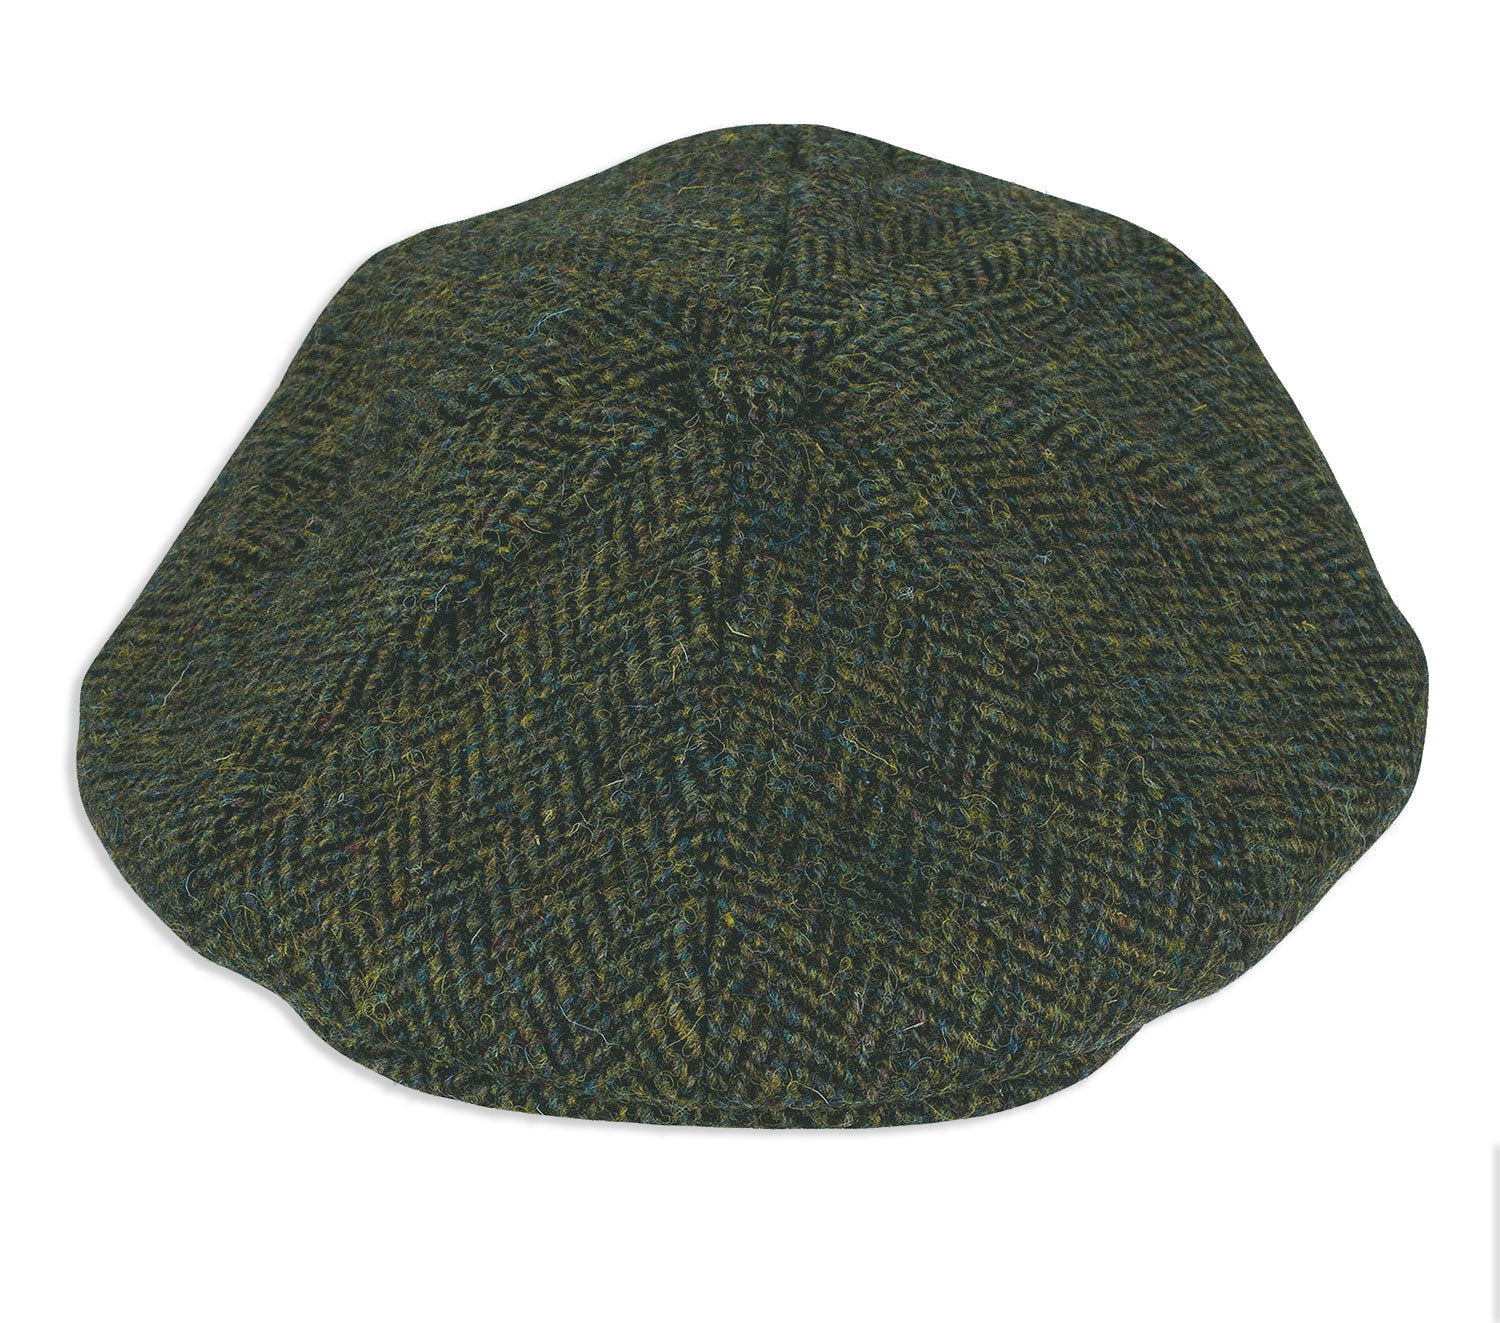 A traditionally styled 8 panelled tweed cap with a central button